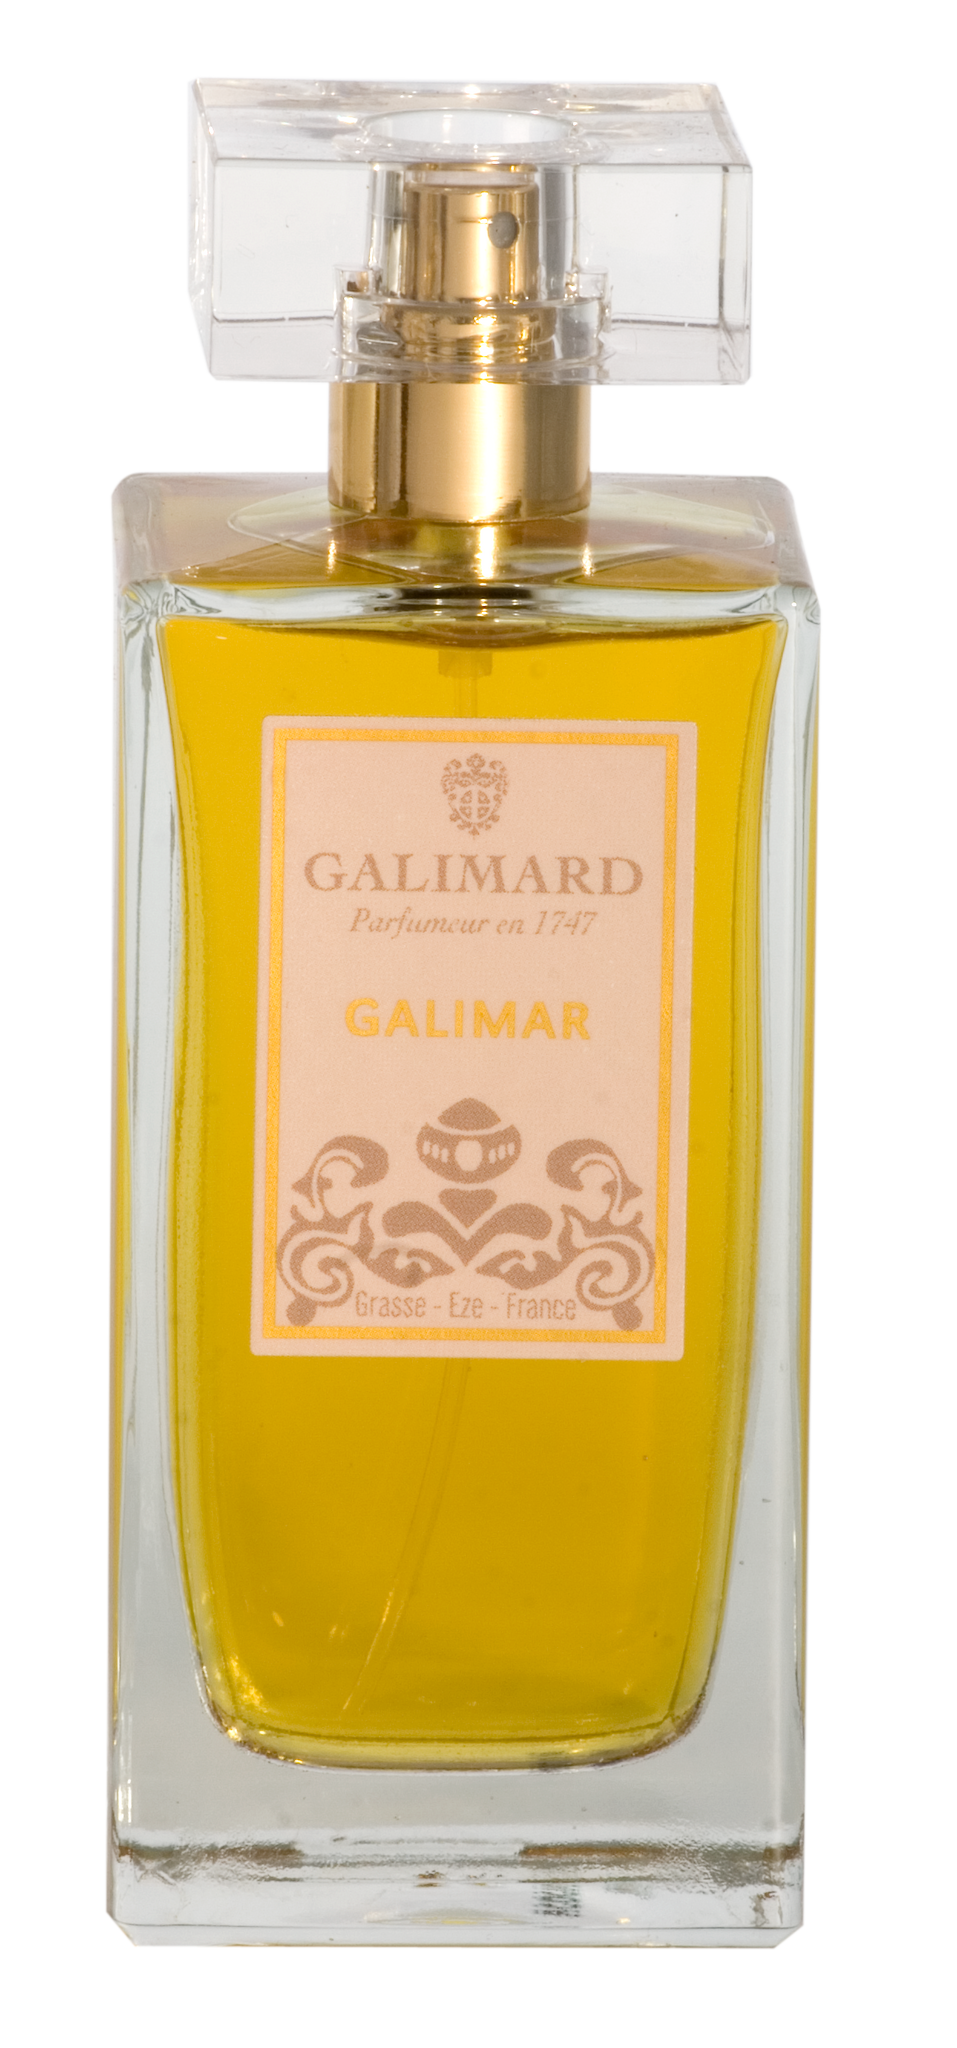 Galimard Galimar Pure Parfum 100ml